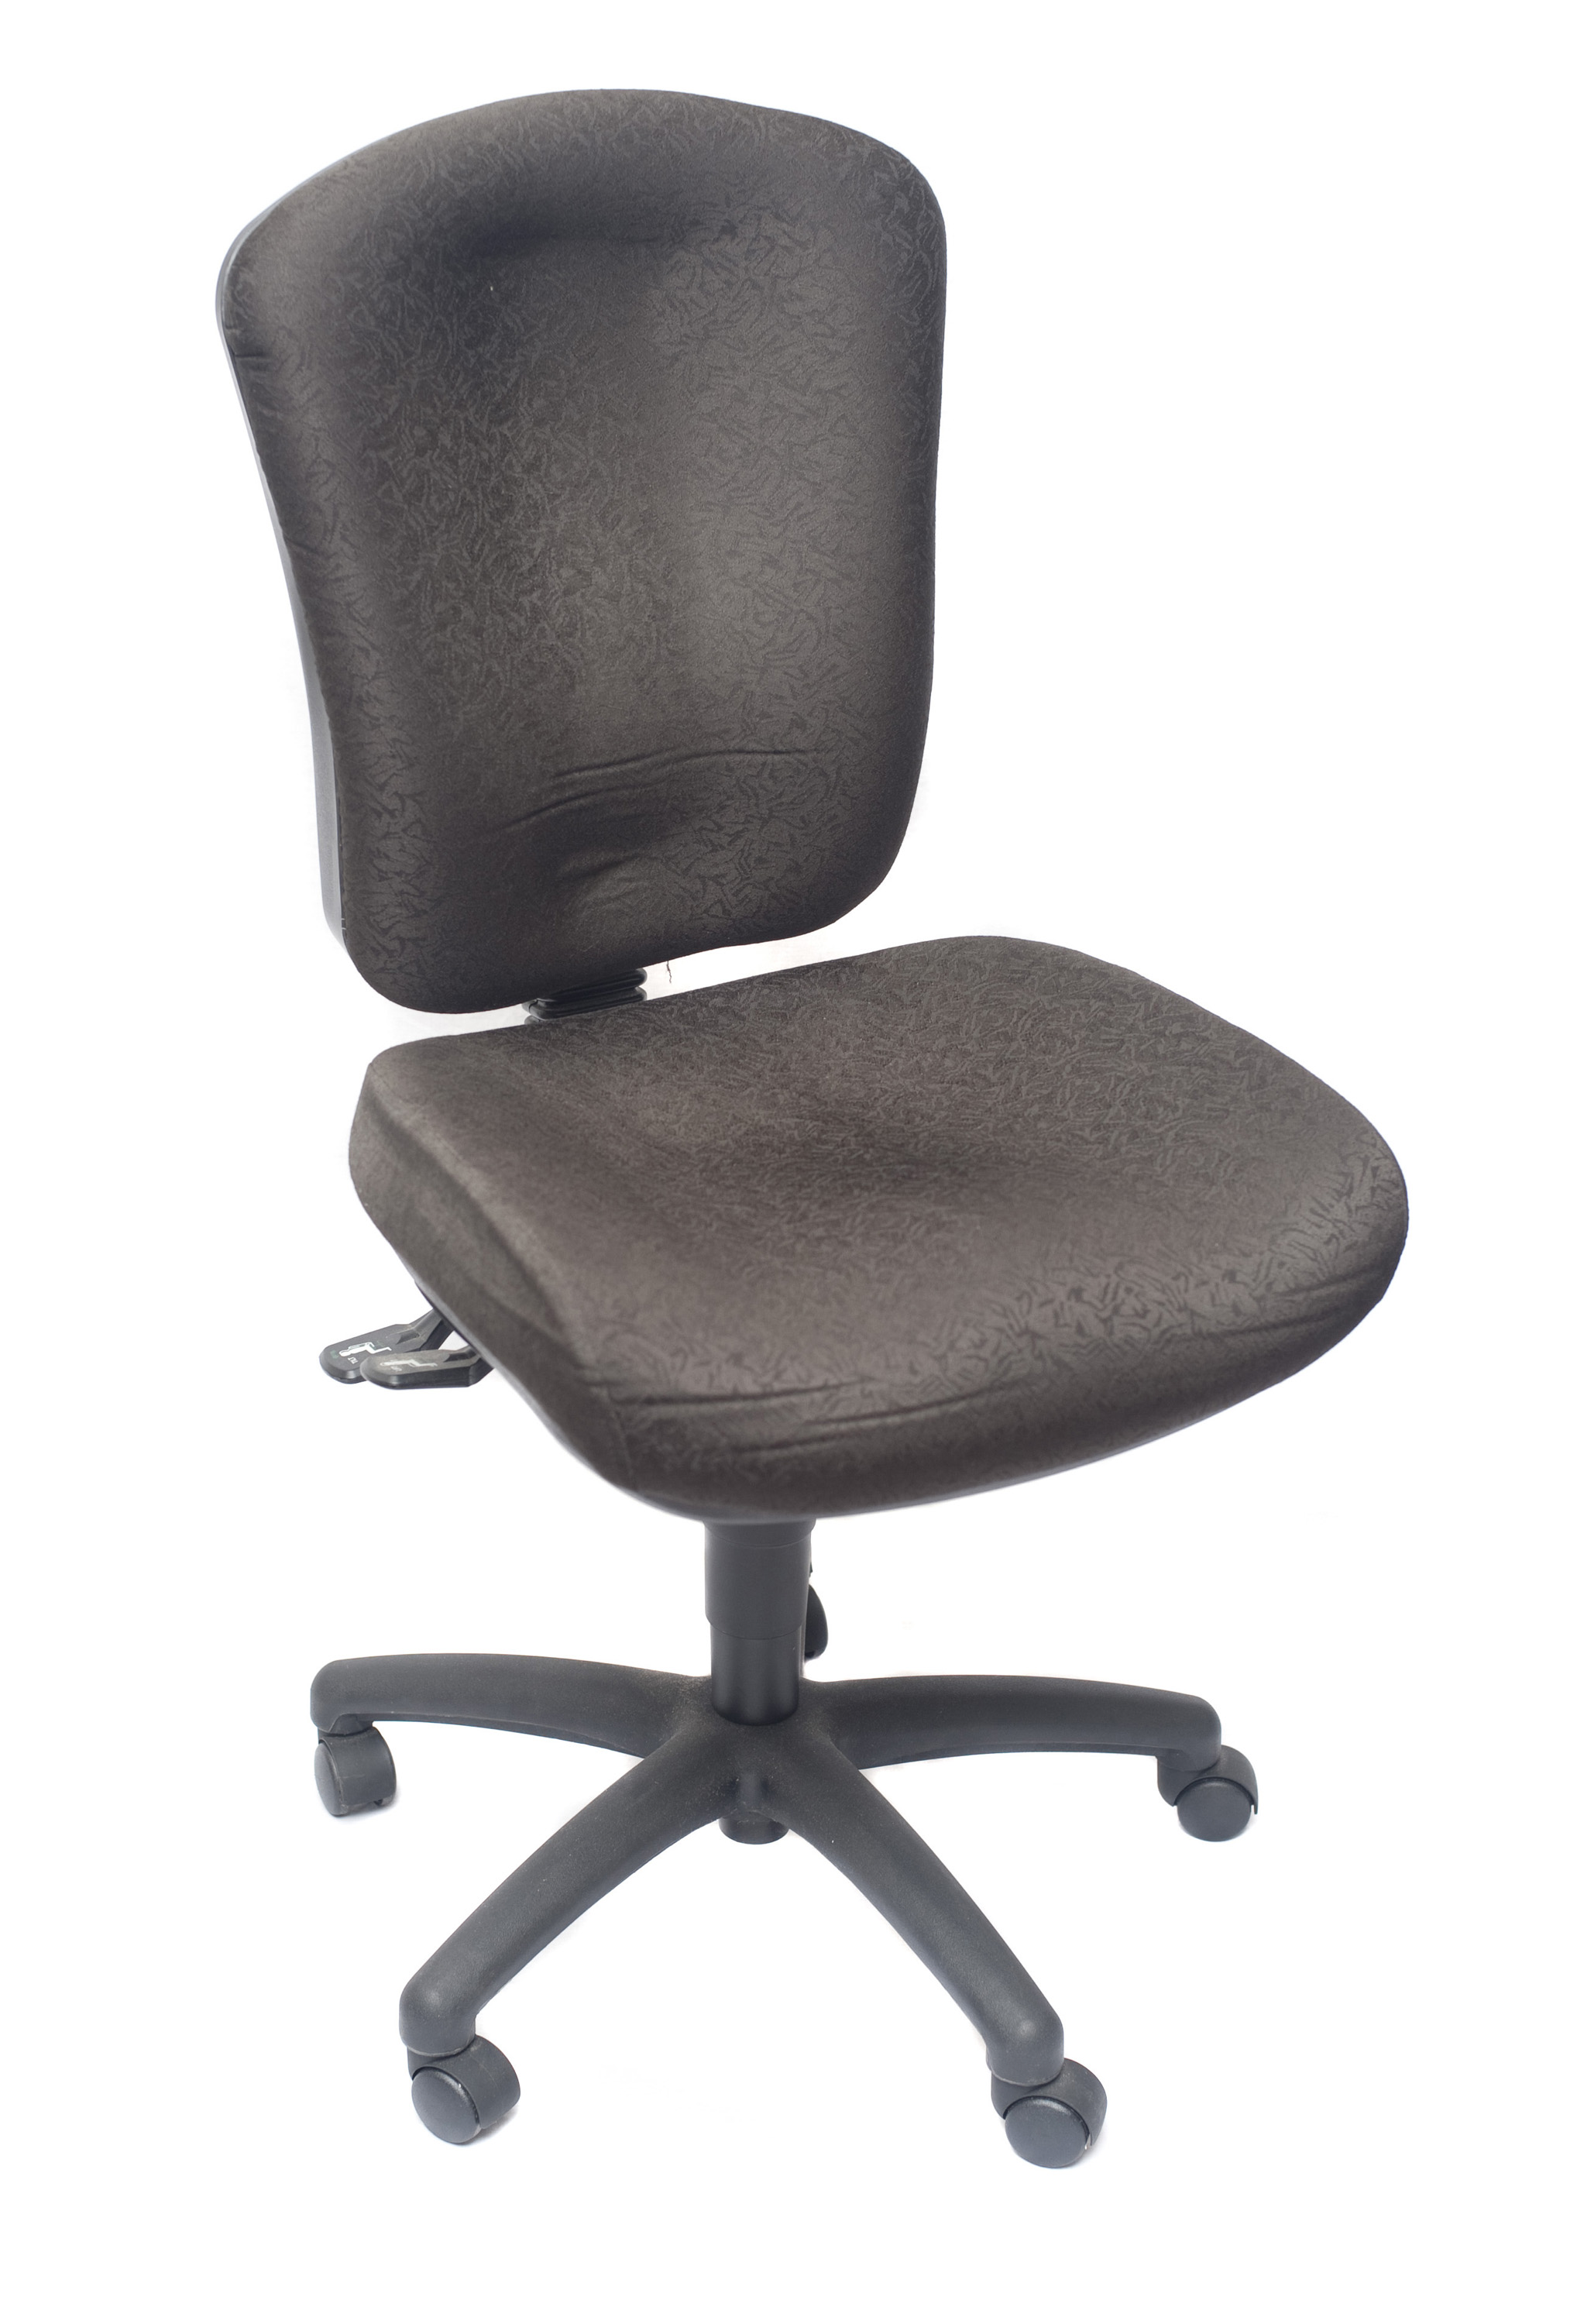 desk comfy chair chairs small lane computer simple black seat no leather of fuzzy with swivel wheels size comfortable office full adjustable haworth white